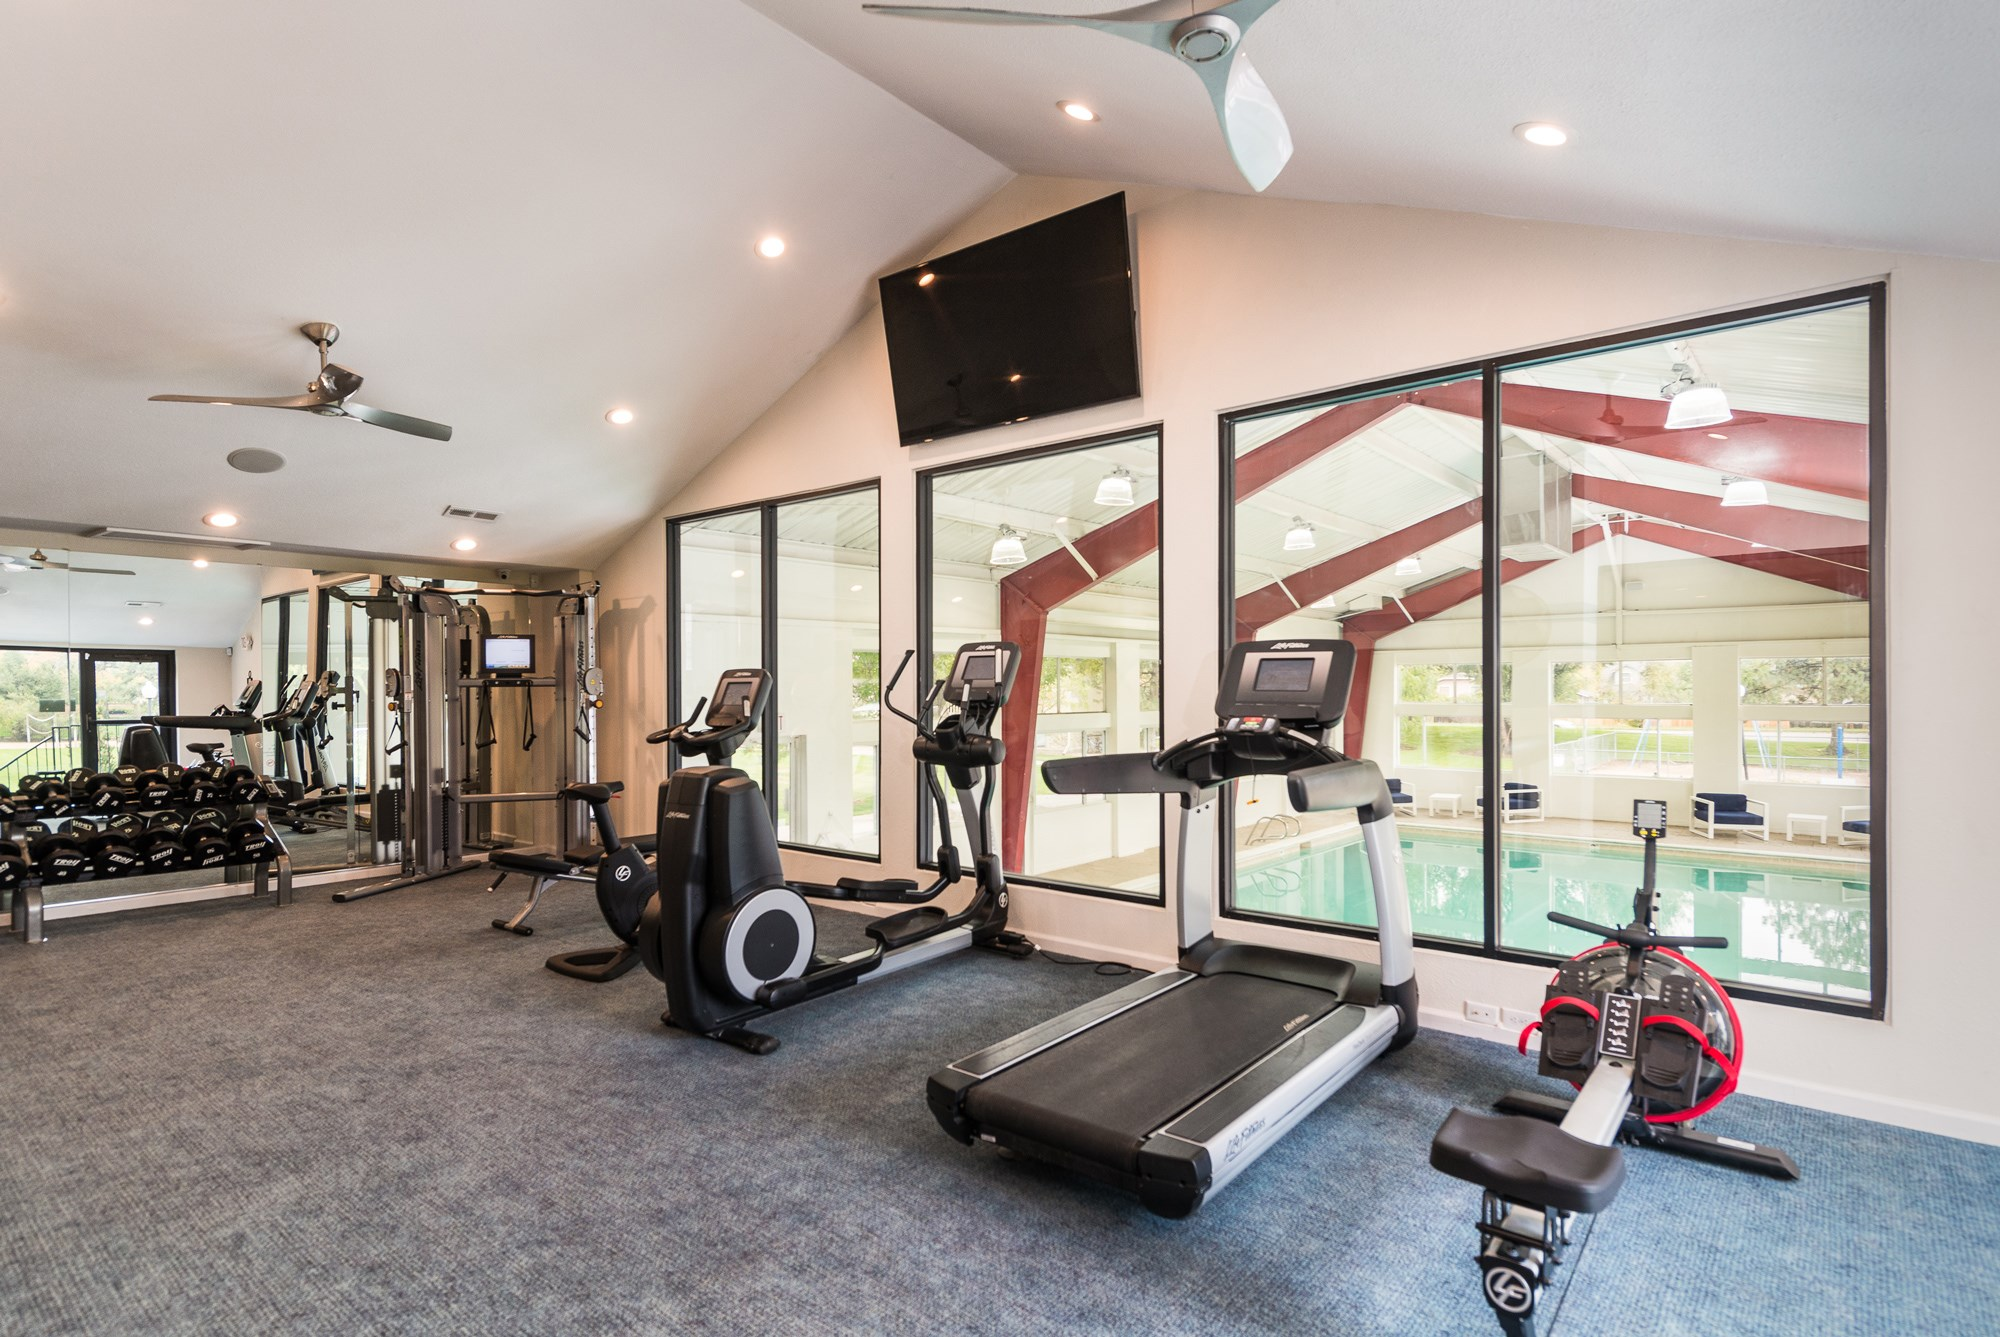 Fitness Center at Village Gardens Apartments in Fort Collins, CO